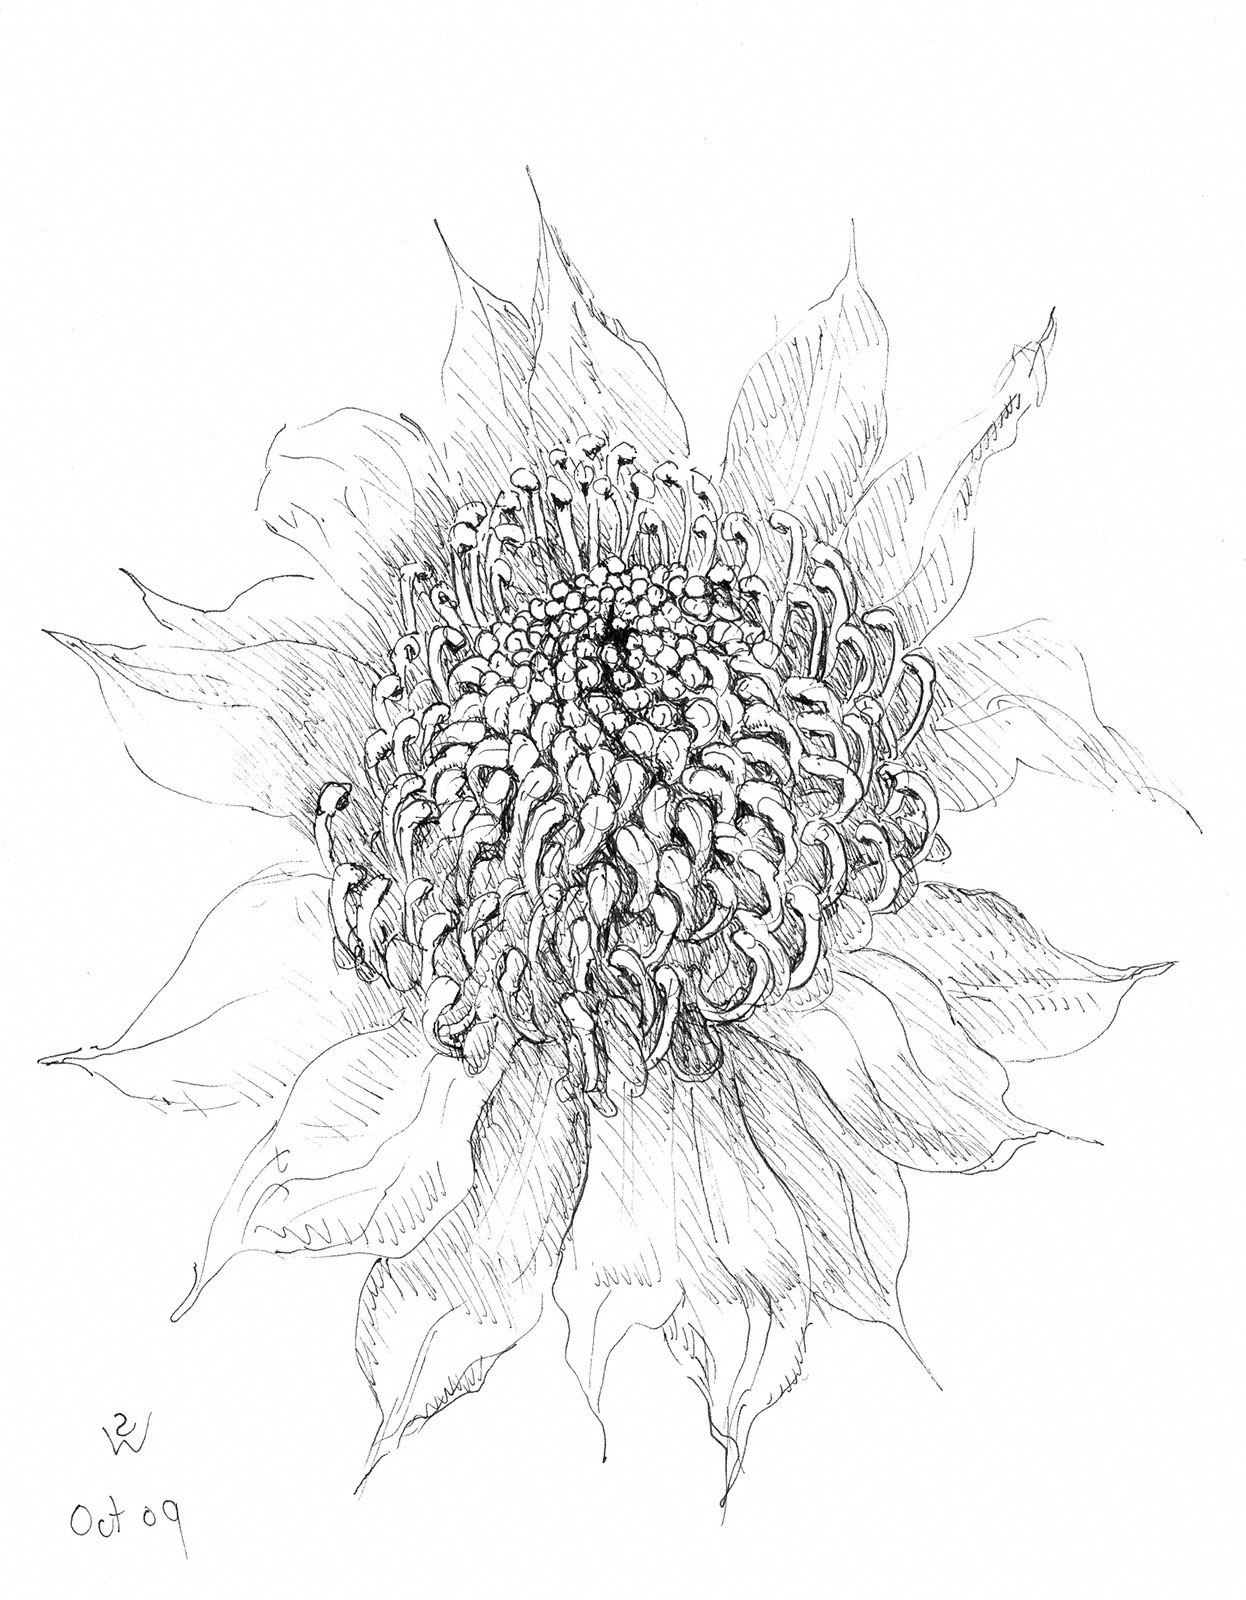 Waratah (pen) by Susan Dorothea White